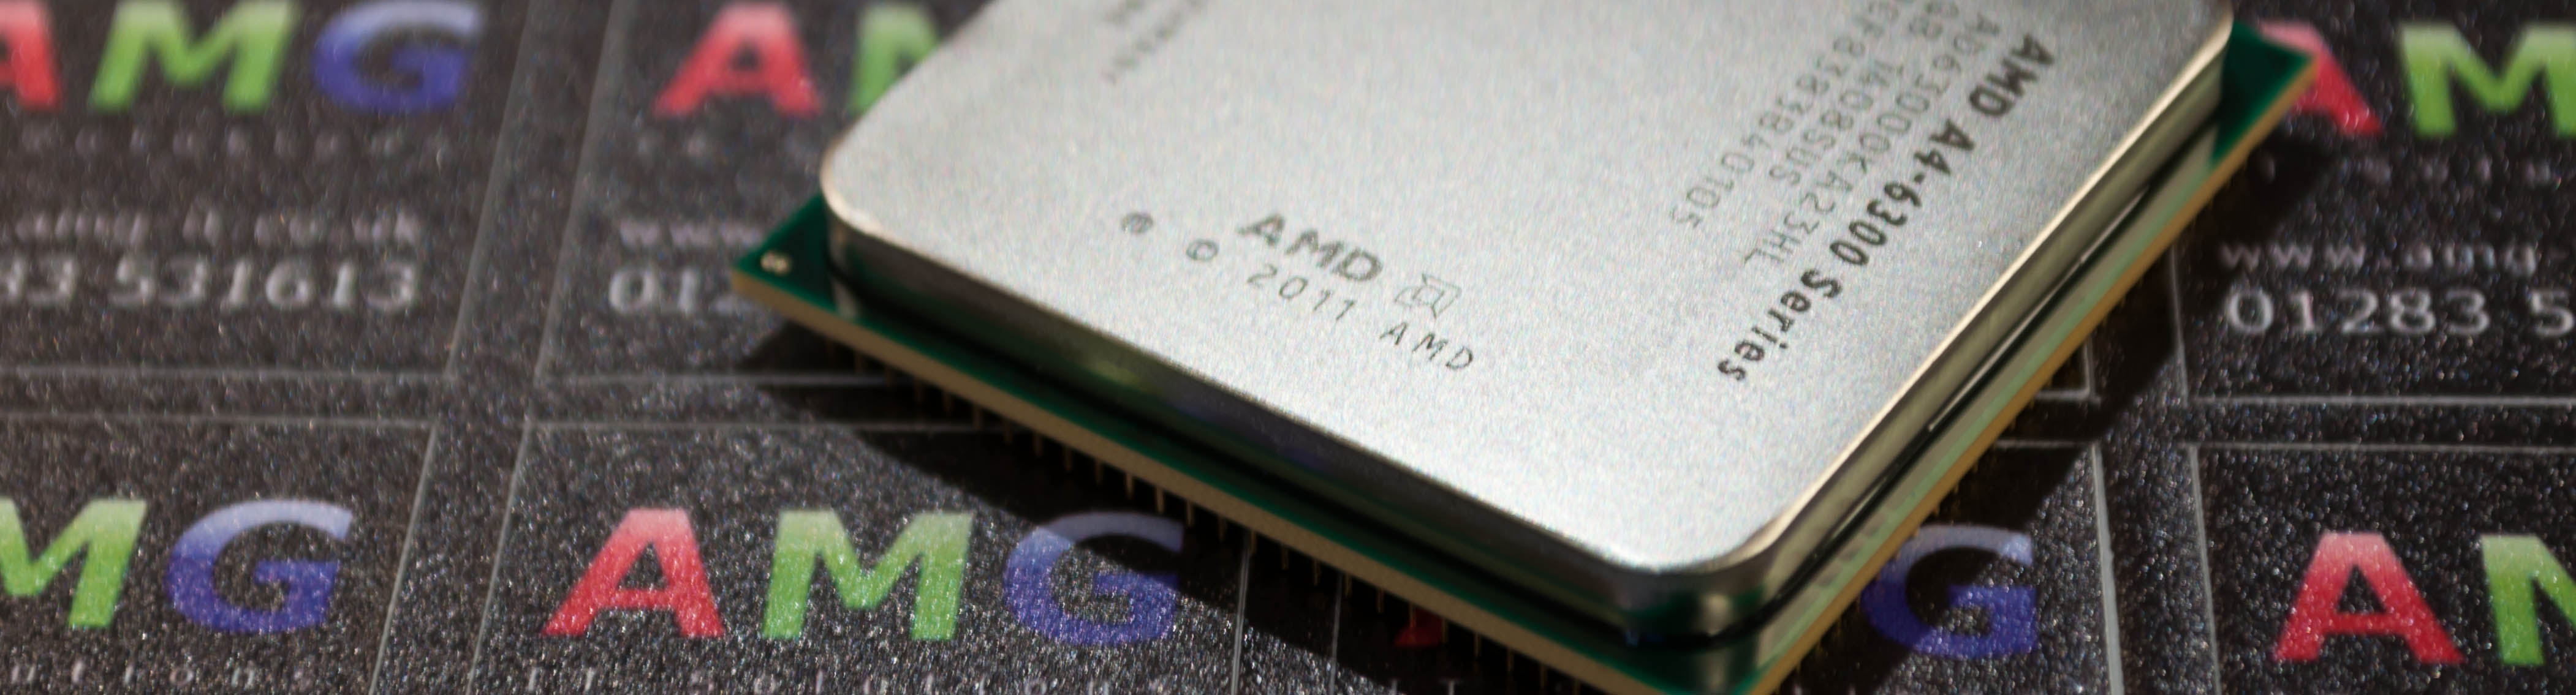 Quality processors at the heart of your build